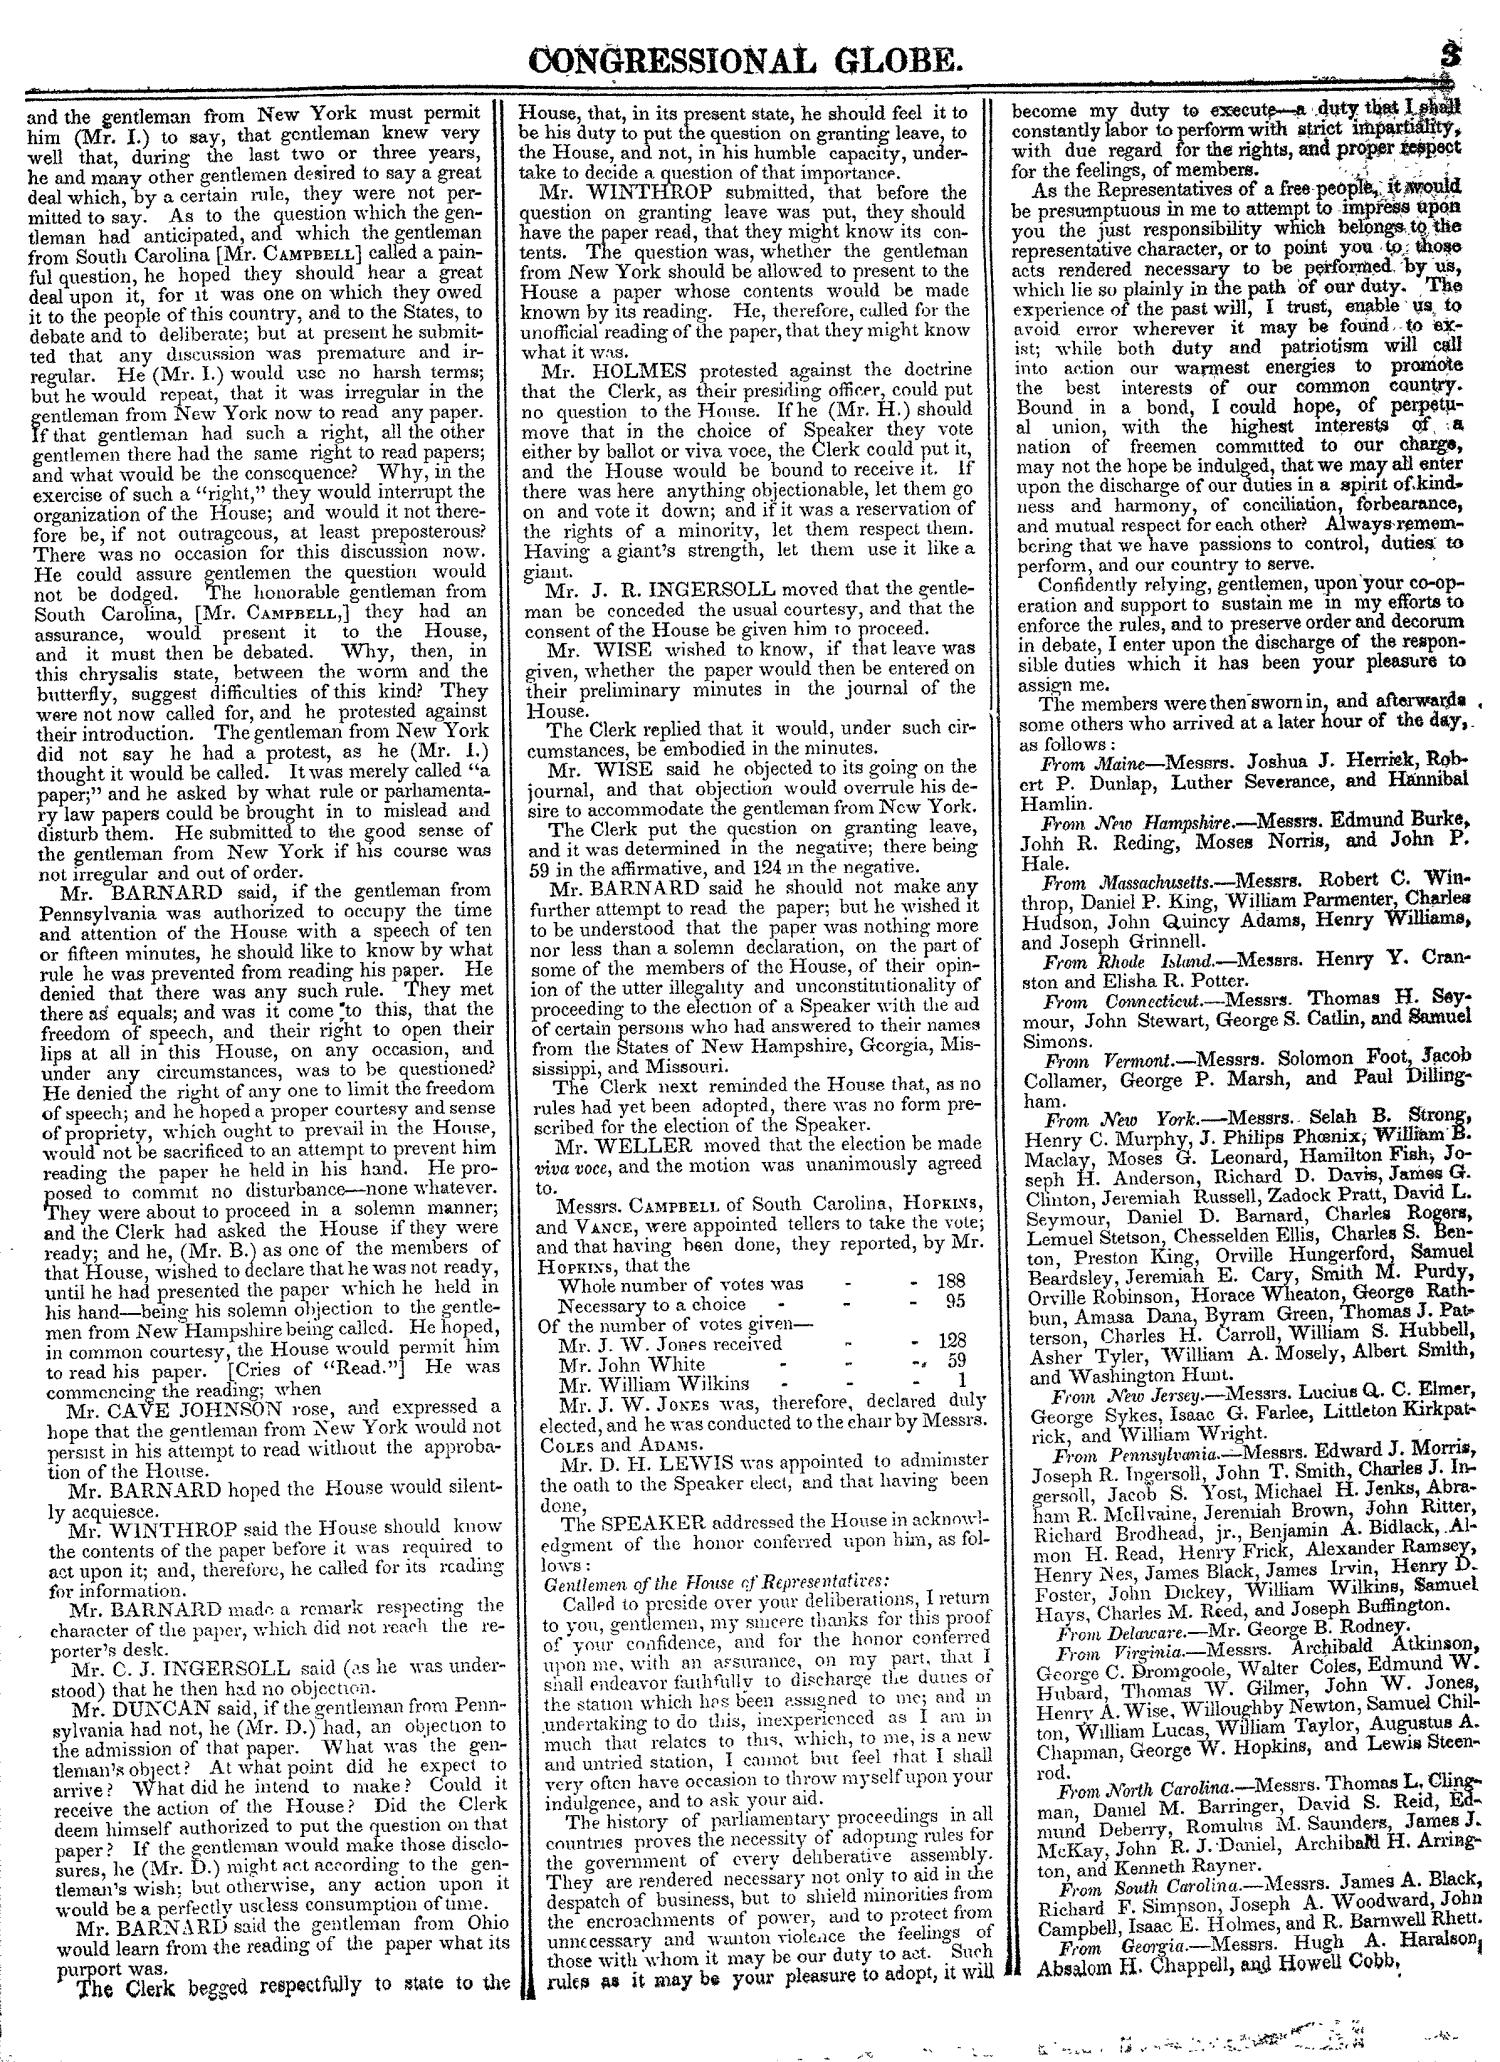 The Congressional Globe, Volume 13, Part 1: Twenty-Eighth Congress, First Session                                                                                                      3